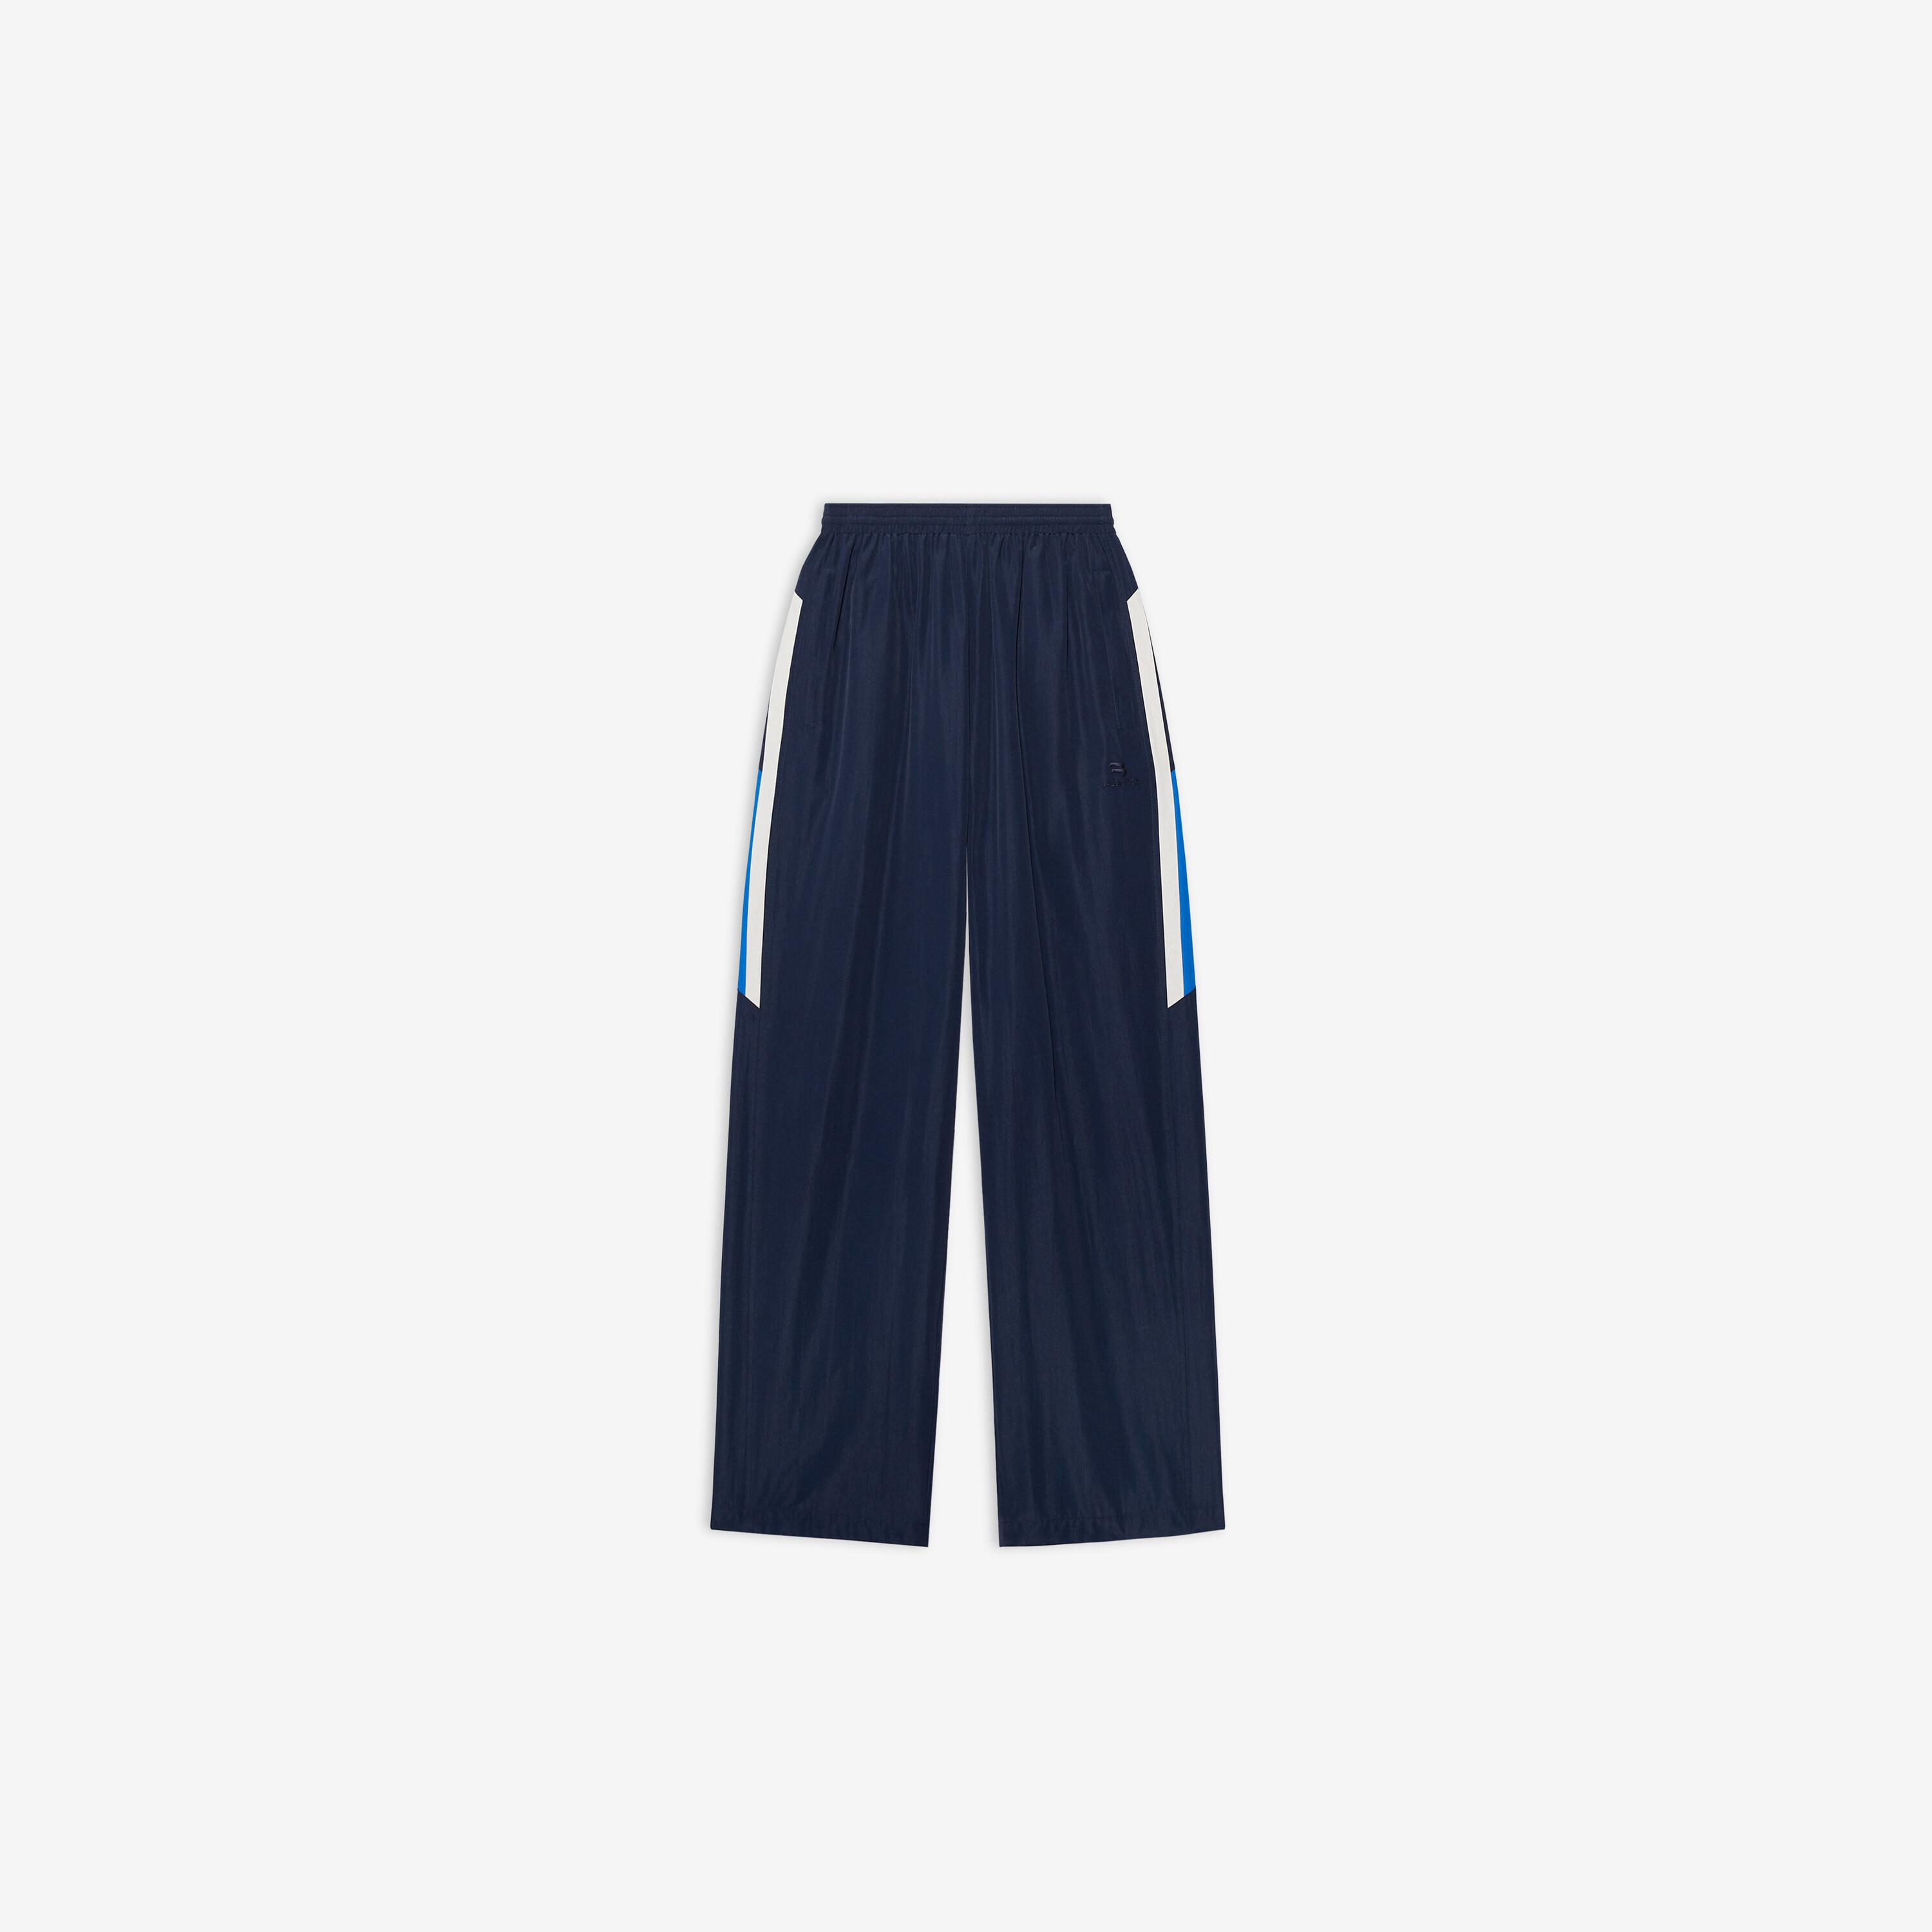 One Size Tracksuit Pants